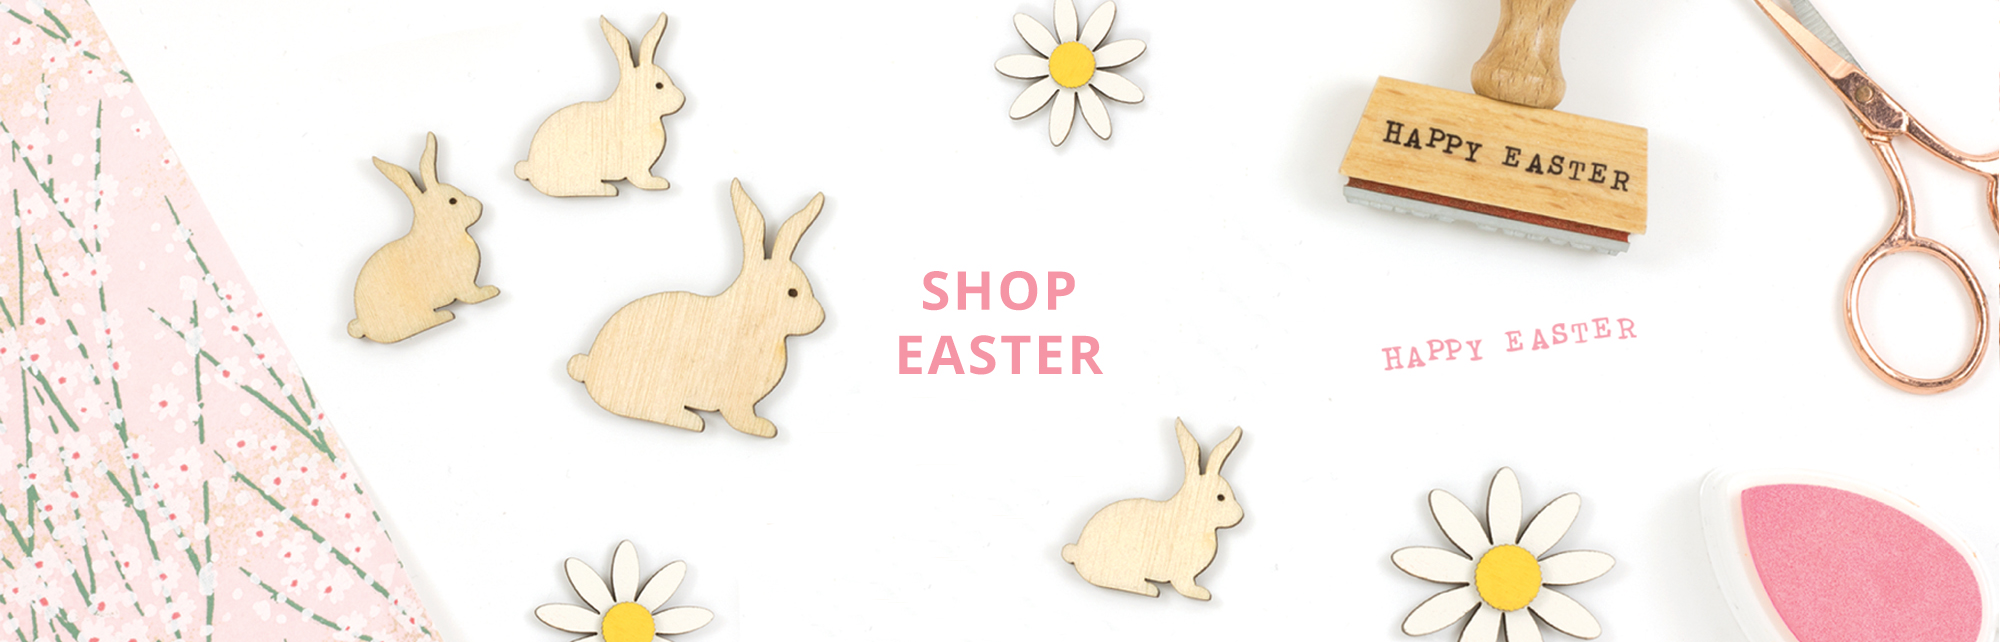 Wooden craft easter shapes artcuts